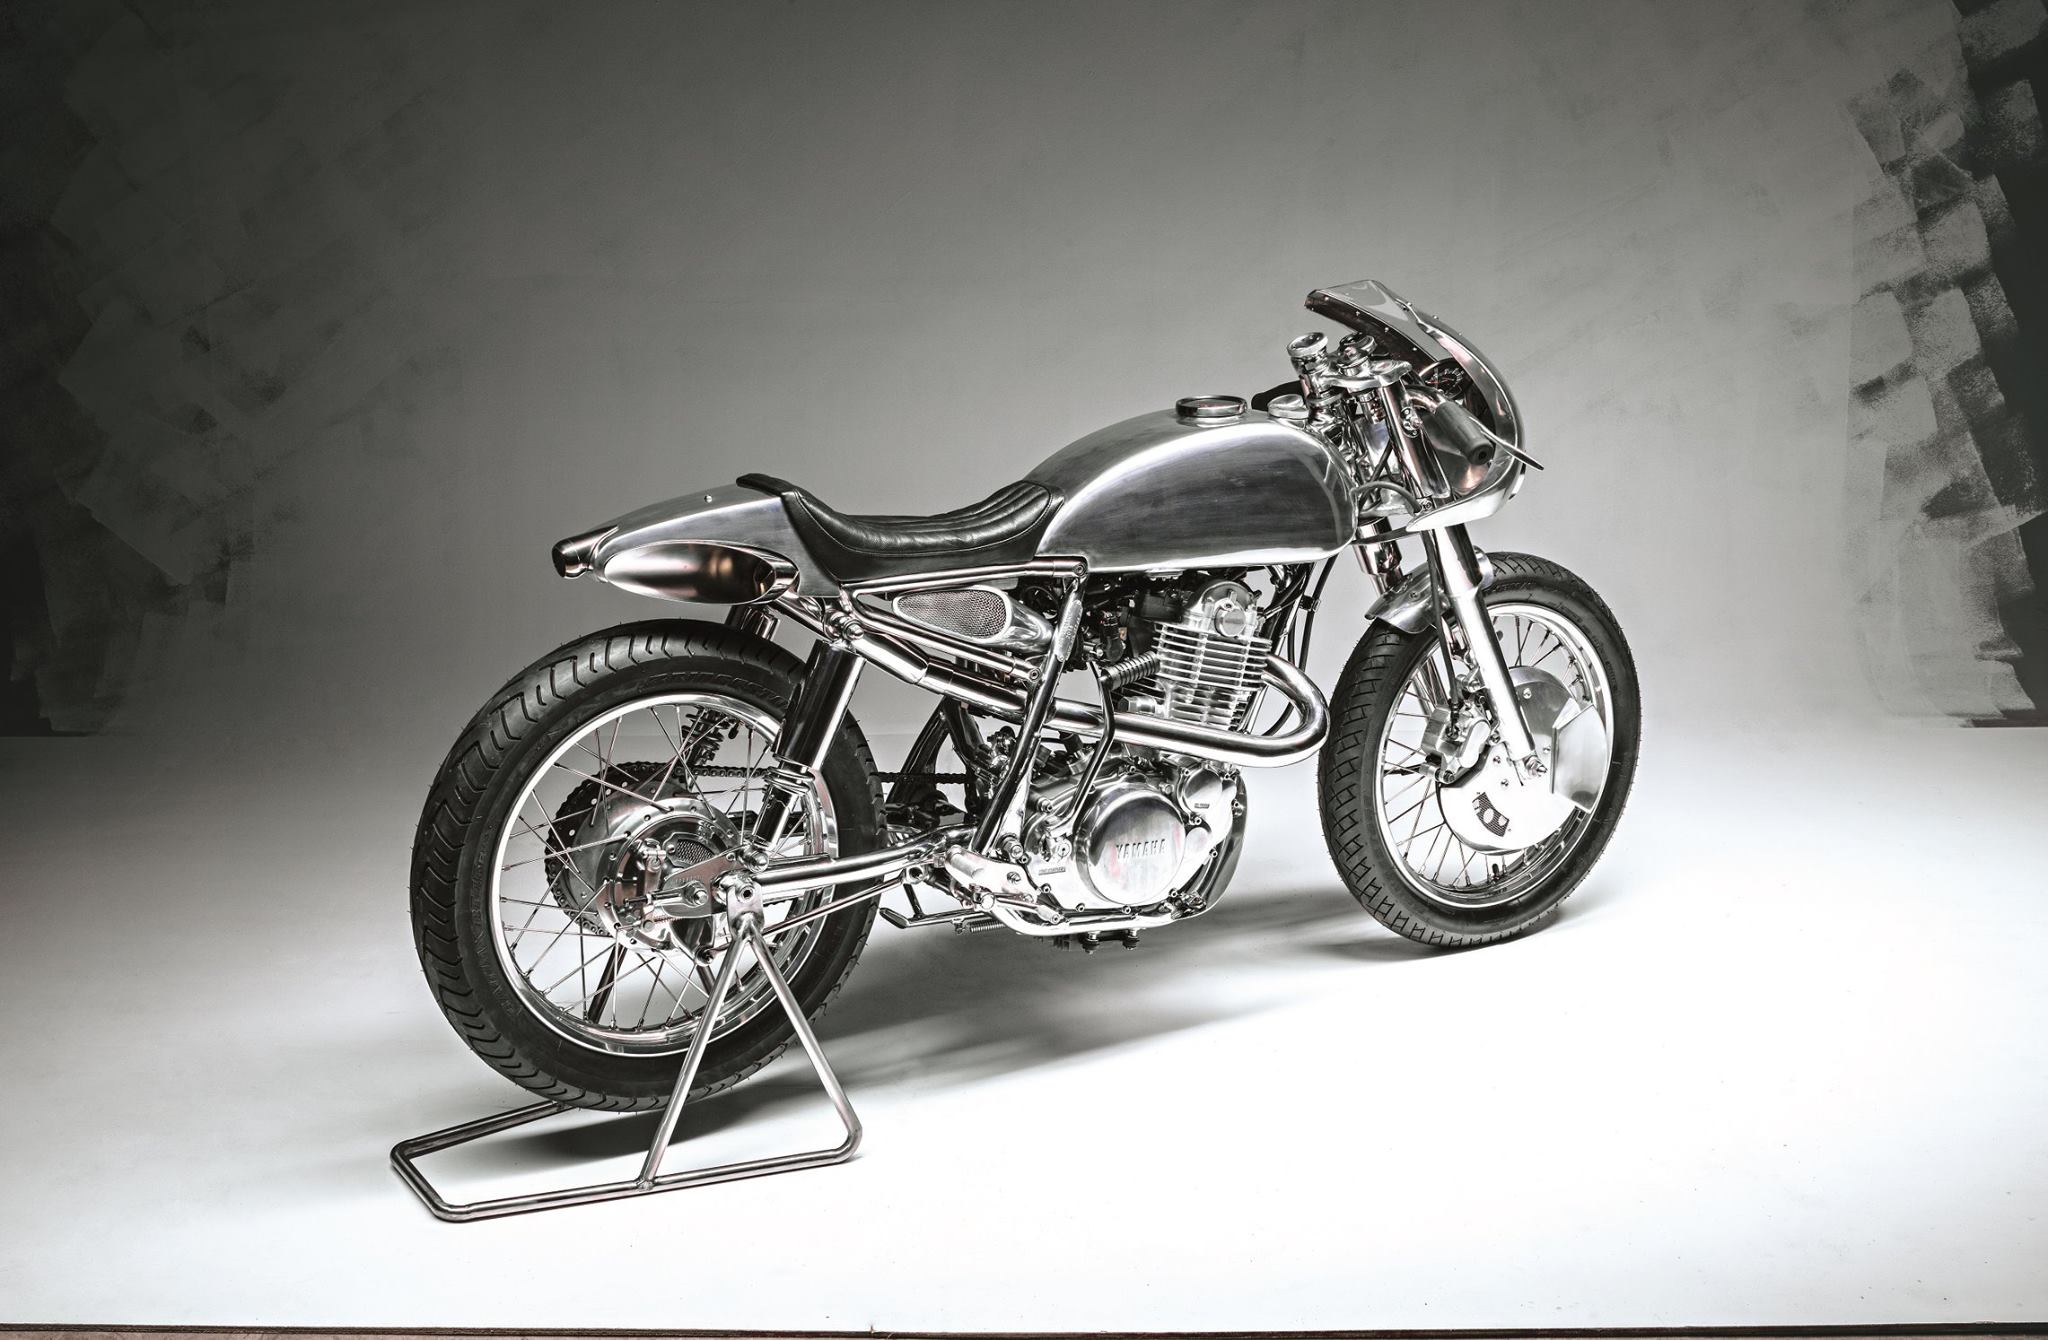 Yamaha SR400 Lane Splitter 54 by BCR Designs